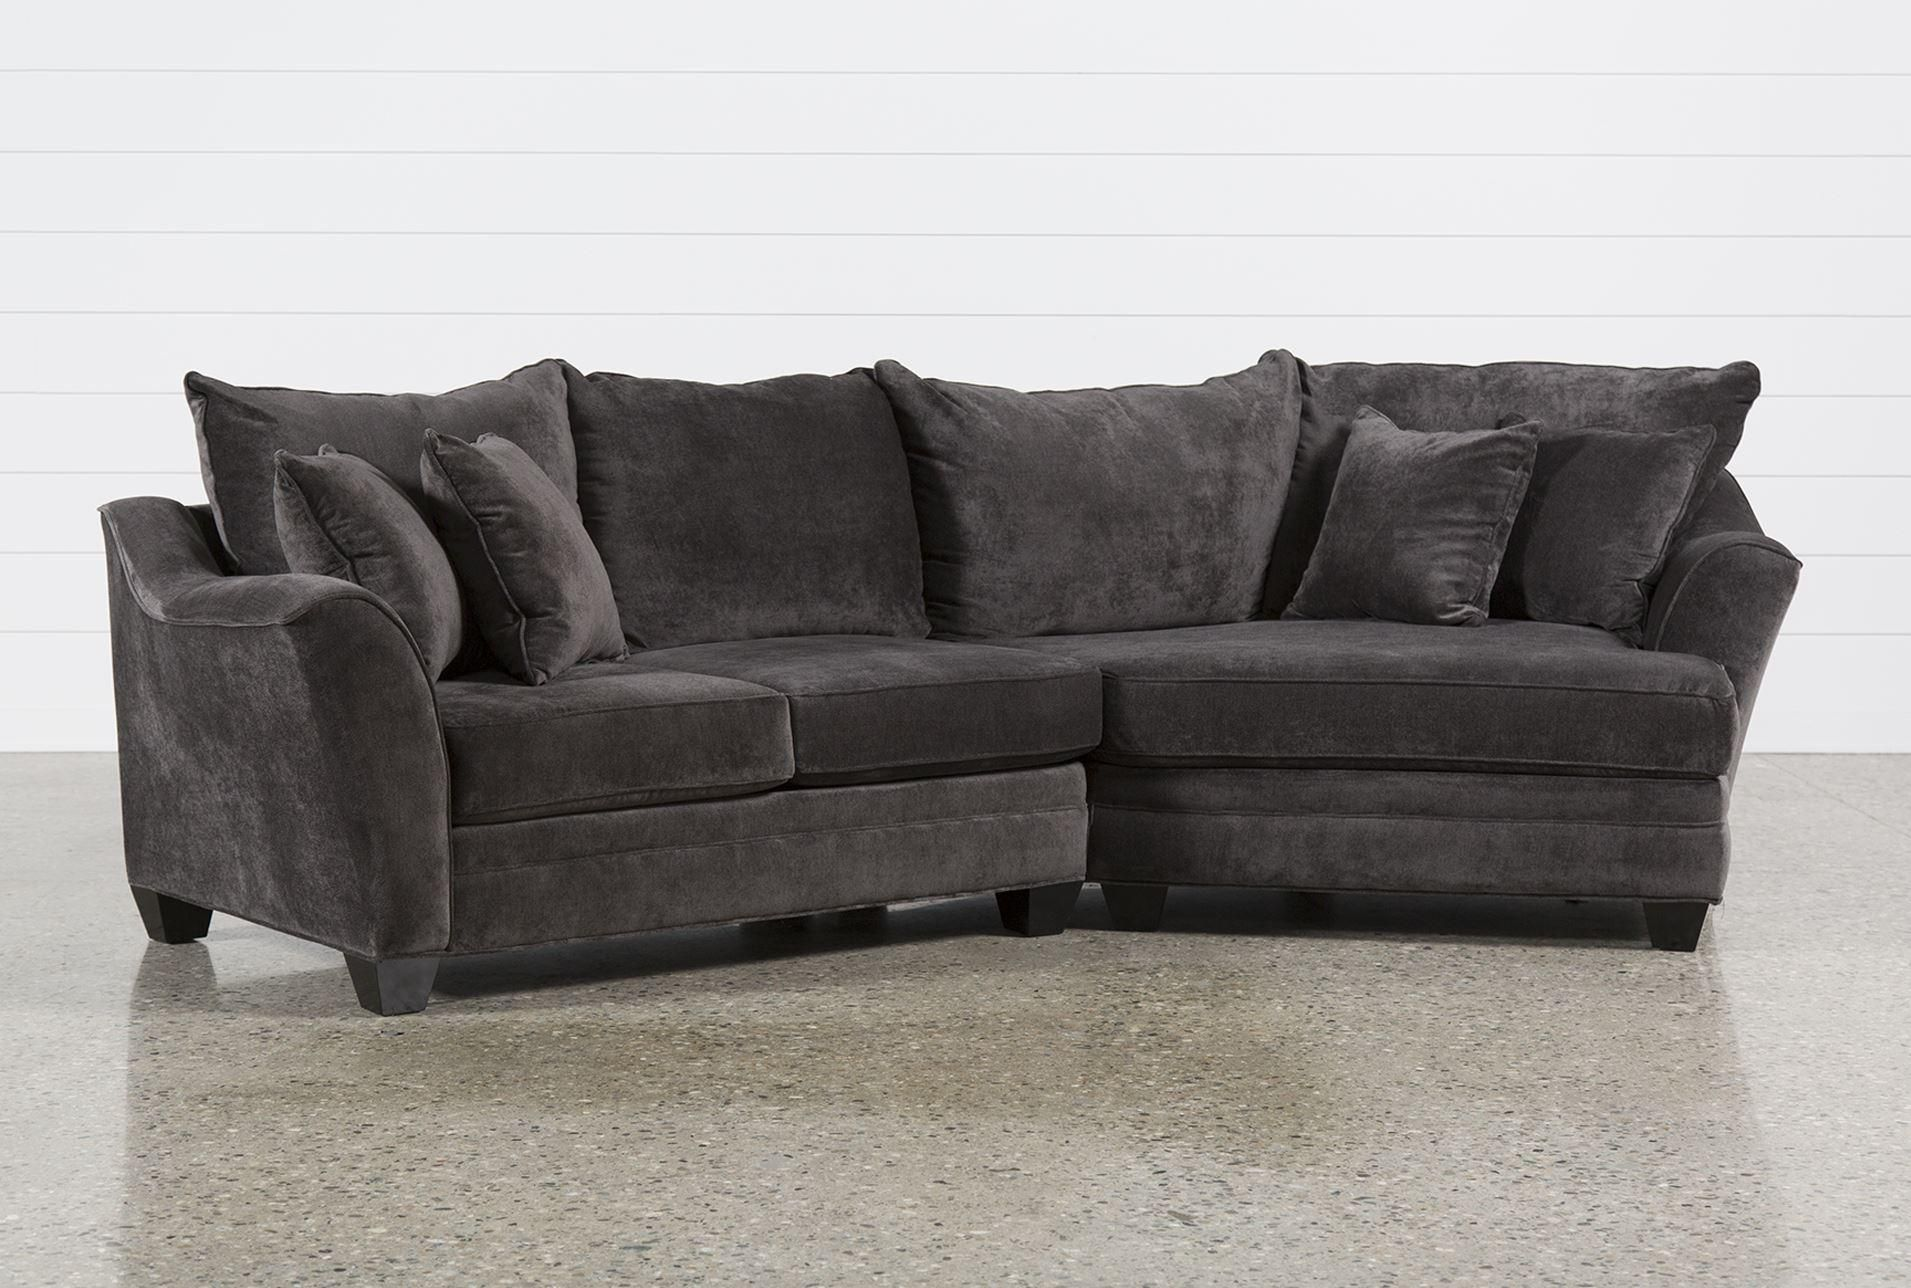 Phenomenal Belleview Graphite 2 Piece Sectional W Raf Cuddler House Squirreltailoven Fun Painted Chair Ideas Images Squirreltailovenorg